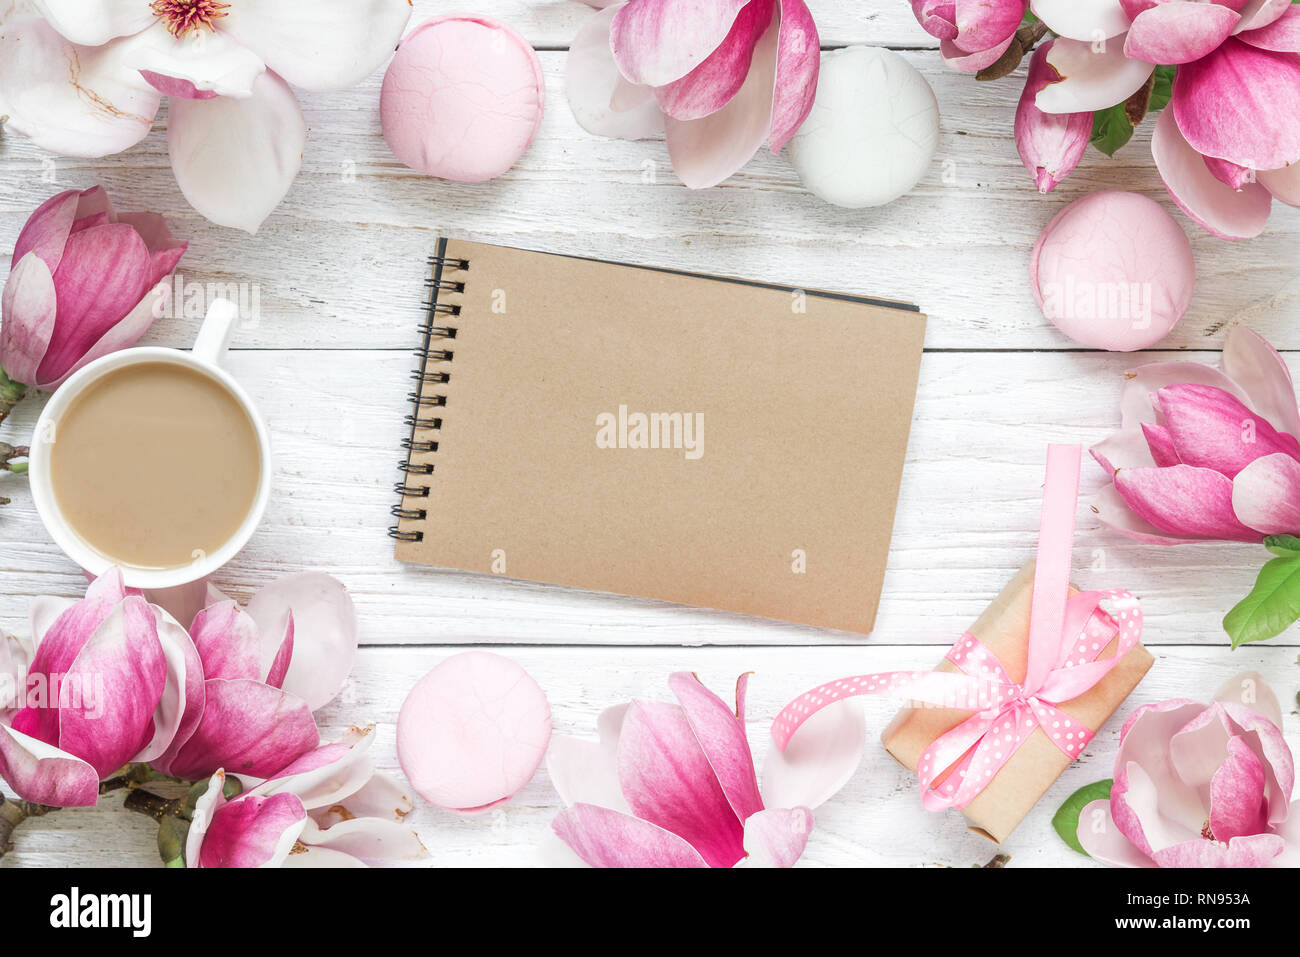 https www alamy com wedding invitation card paper blank magnolia flowers marshmallows gift box on white background wedding concept flat lay top view with copy spac image236844142 html